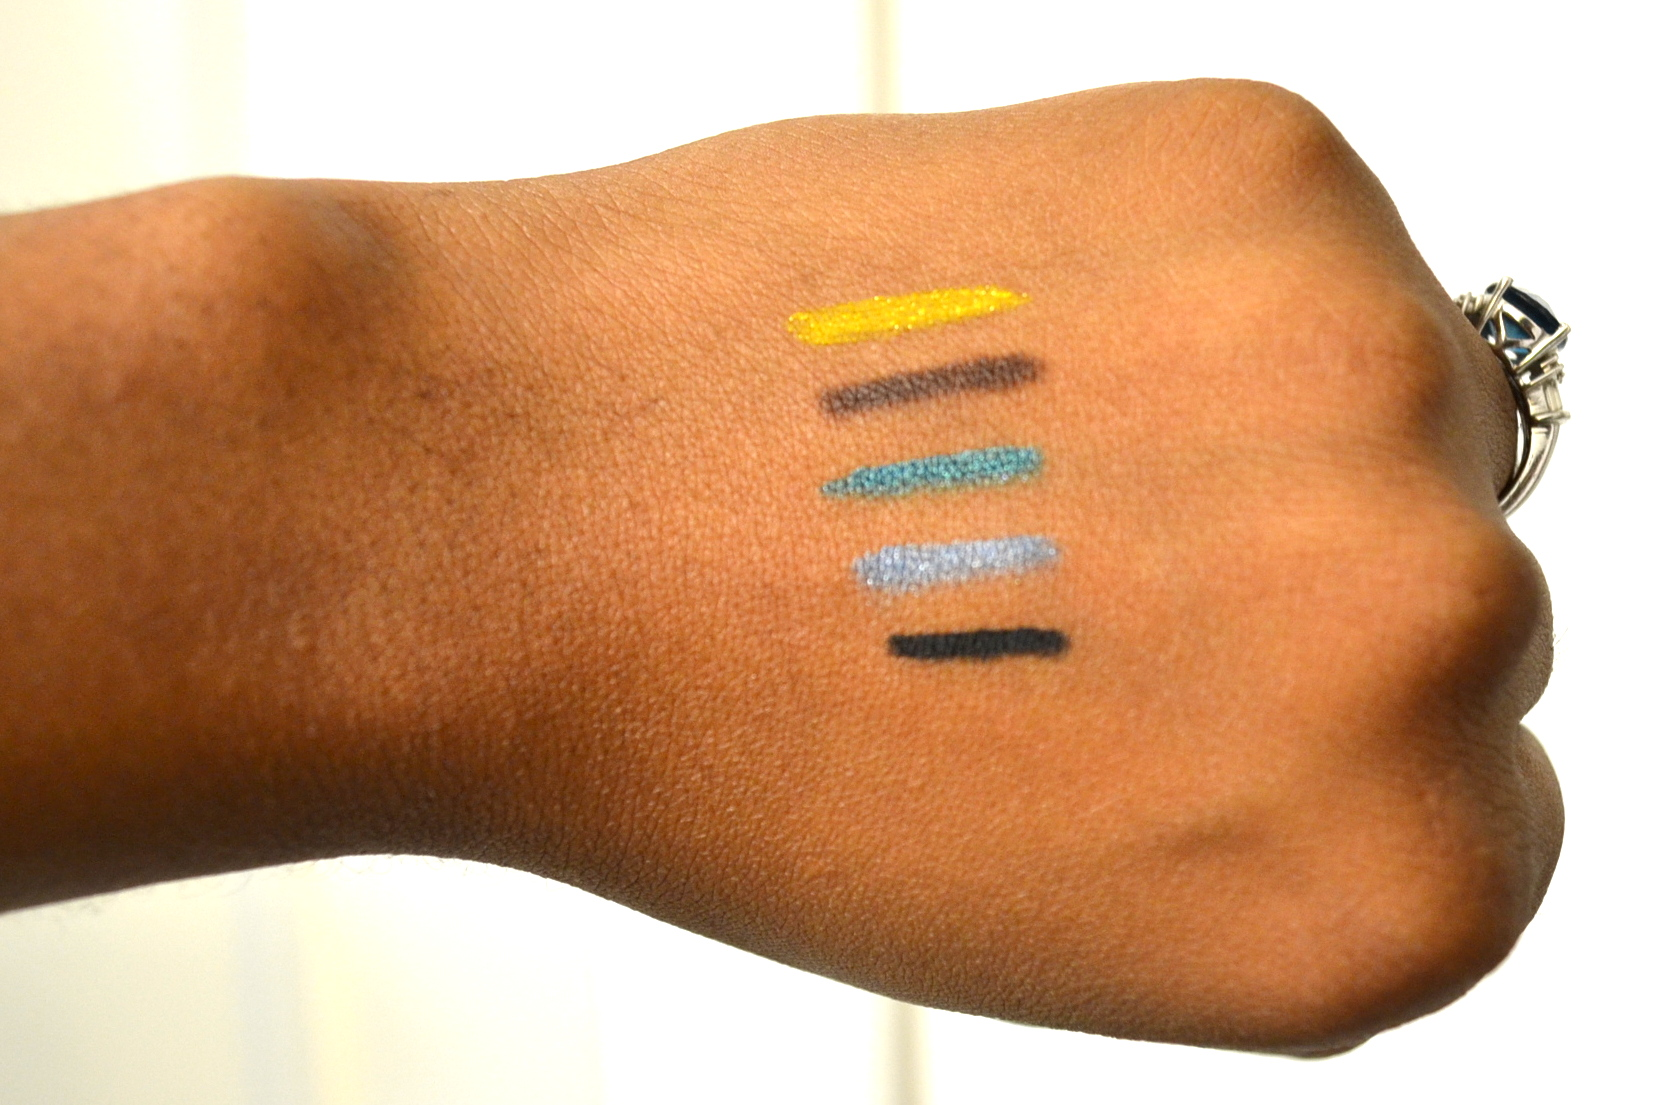 cf eye liner swatches